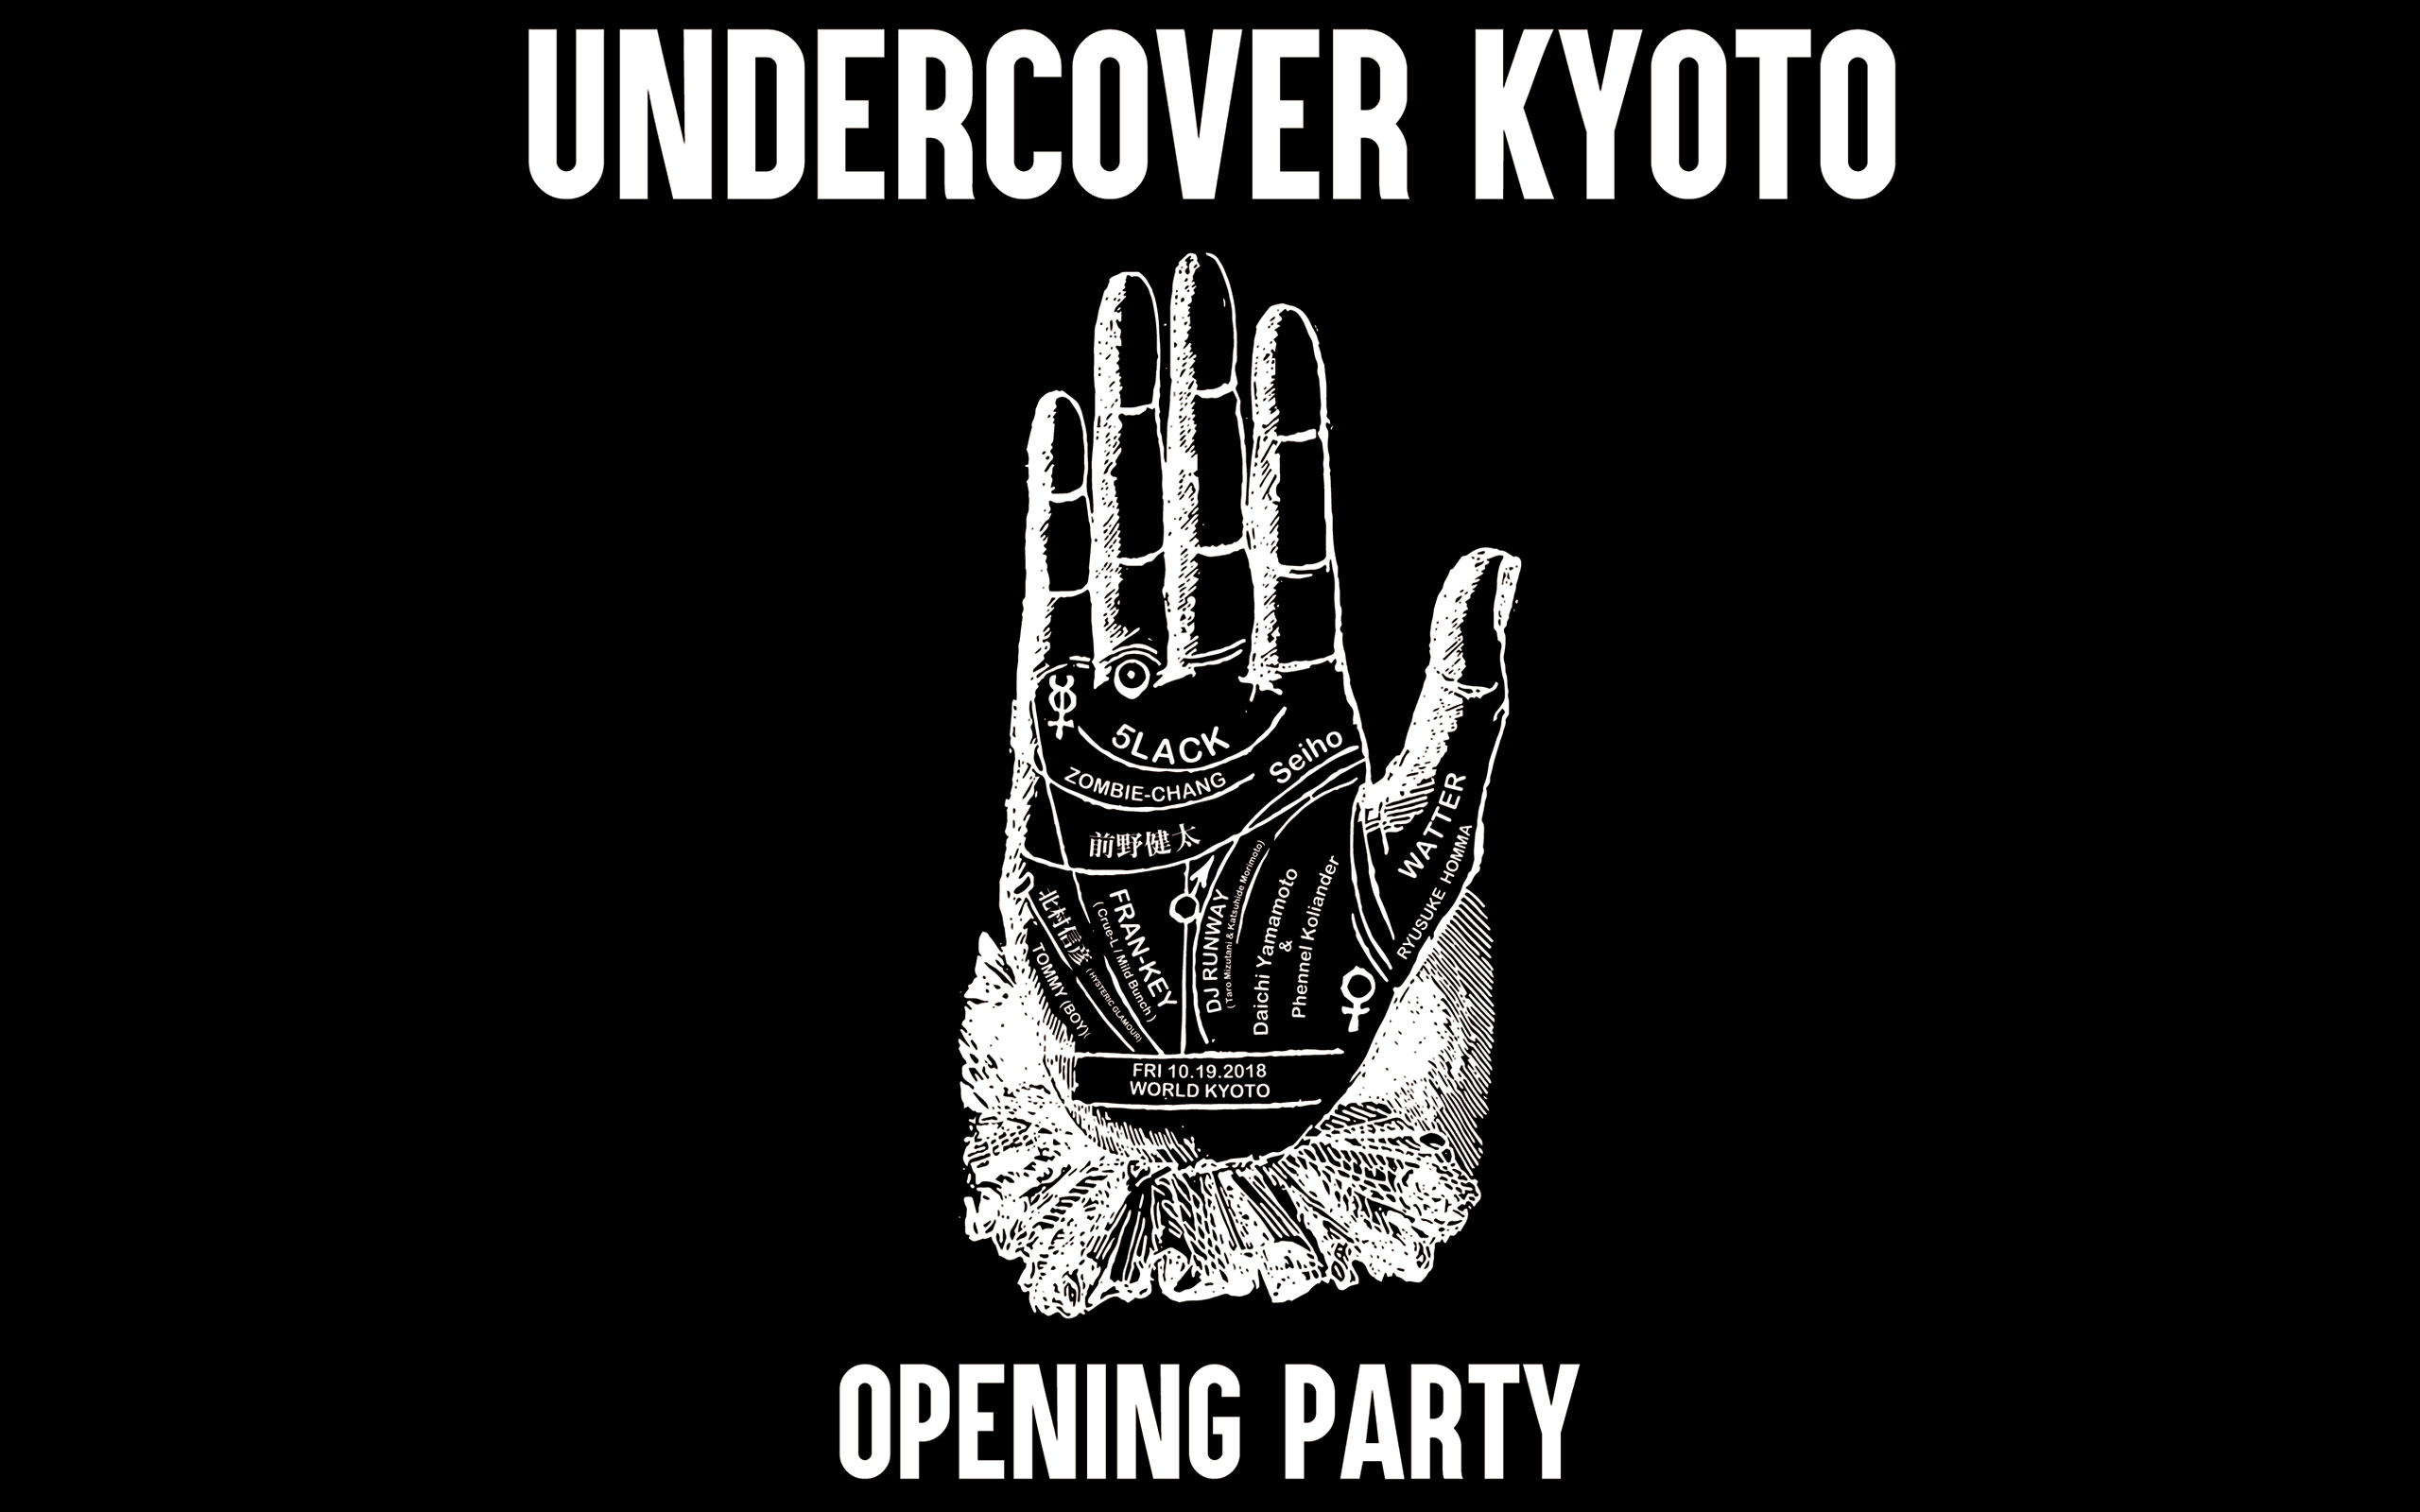 UNDERCOVER Opens The Flagship Store In Kyoto